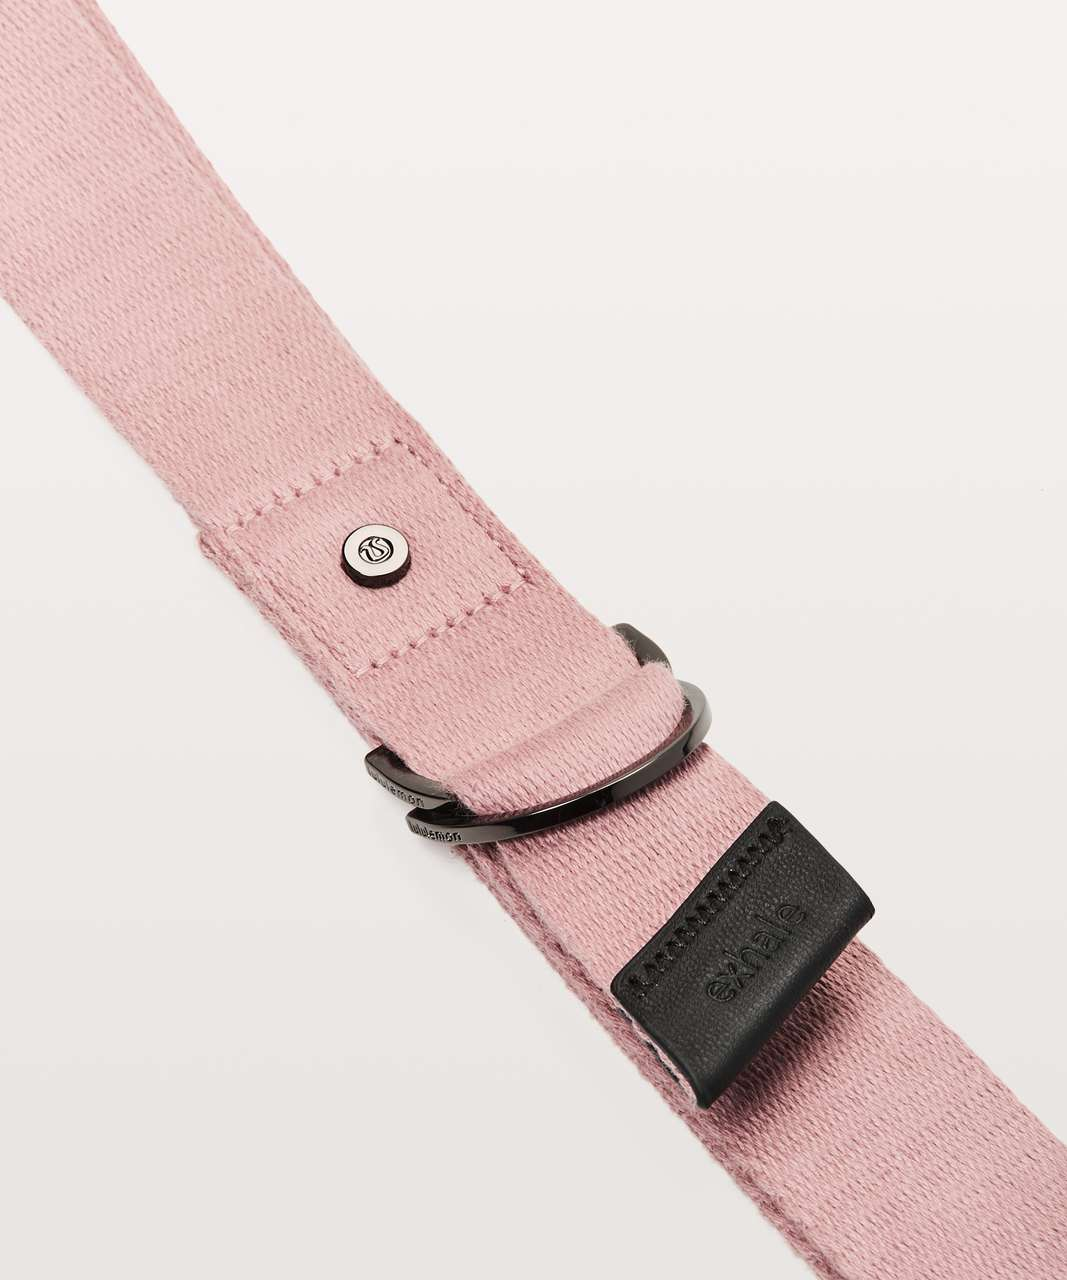 Lululemon No Limits Stretching Strap - Light Quicksand